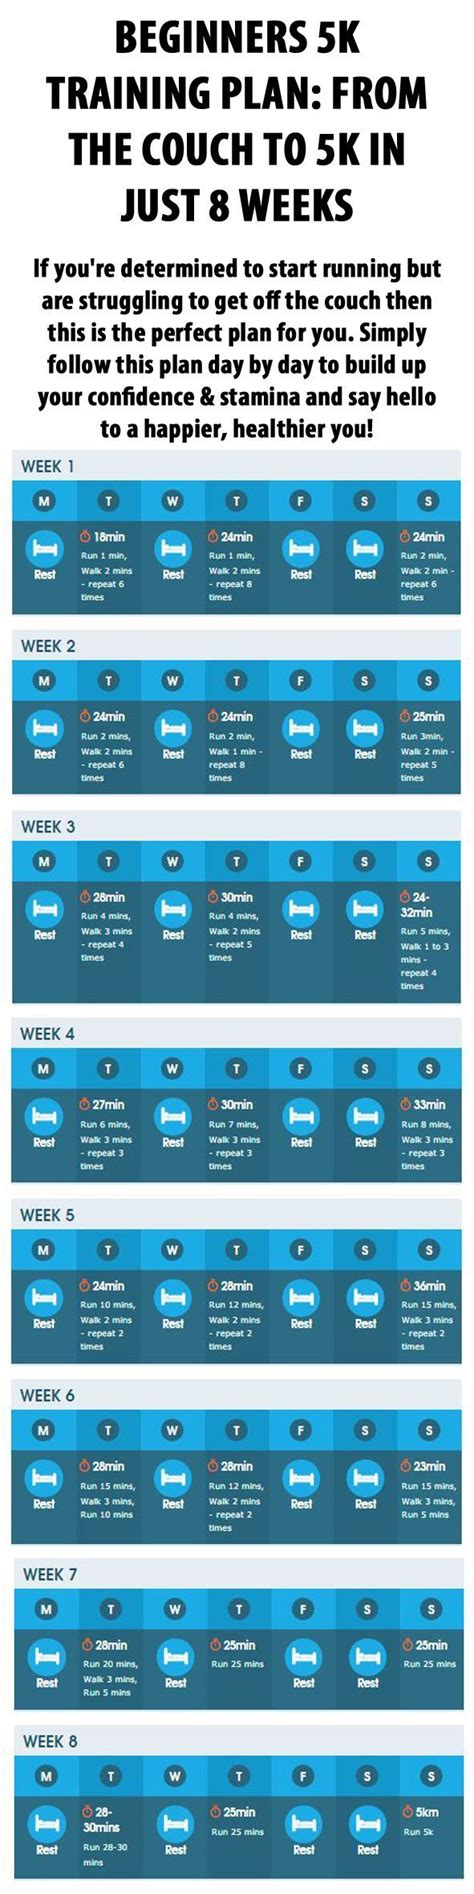 couch to 5k in 8 weeks beginners 5k training plan from the couch to 5k in just 8